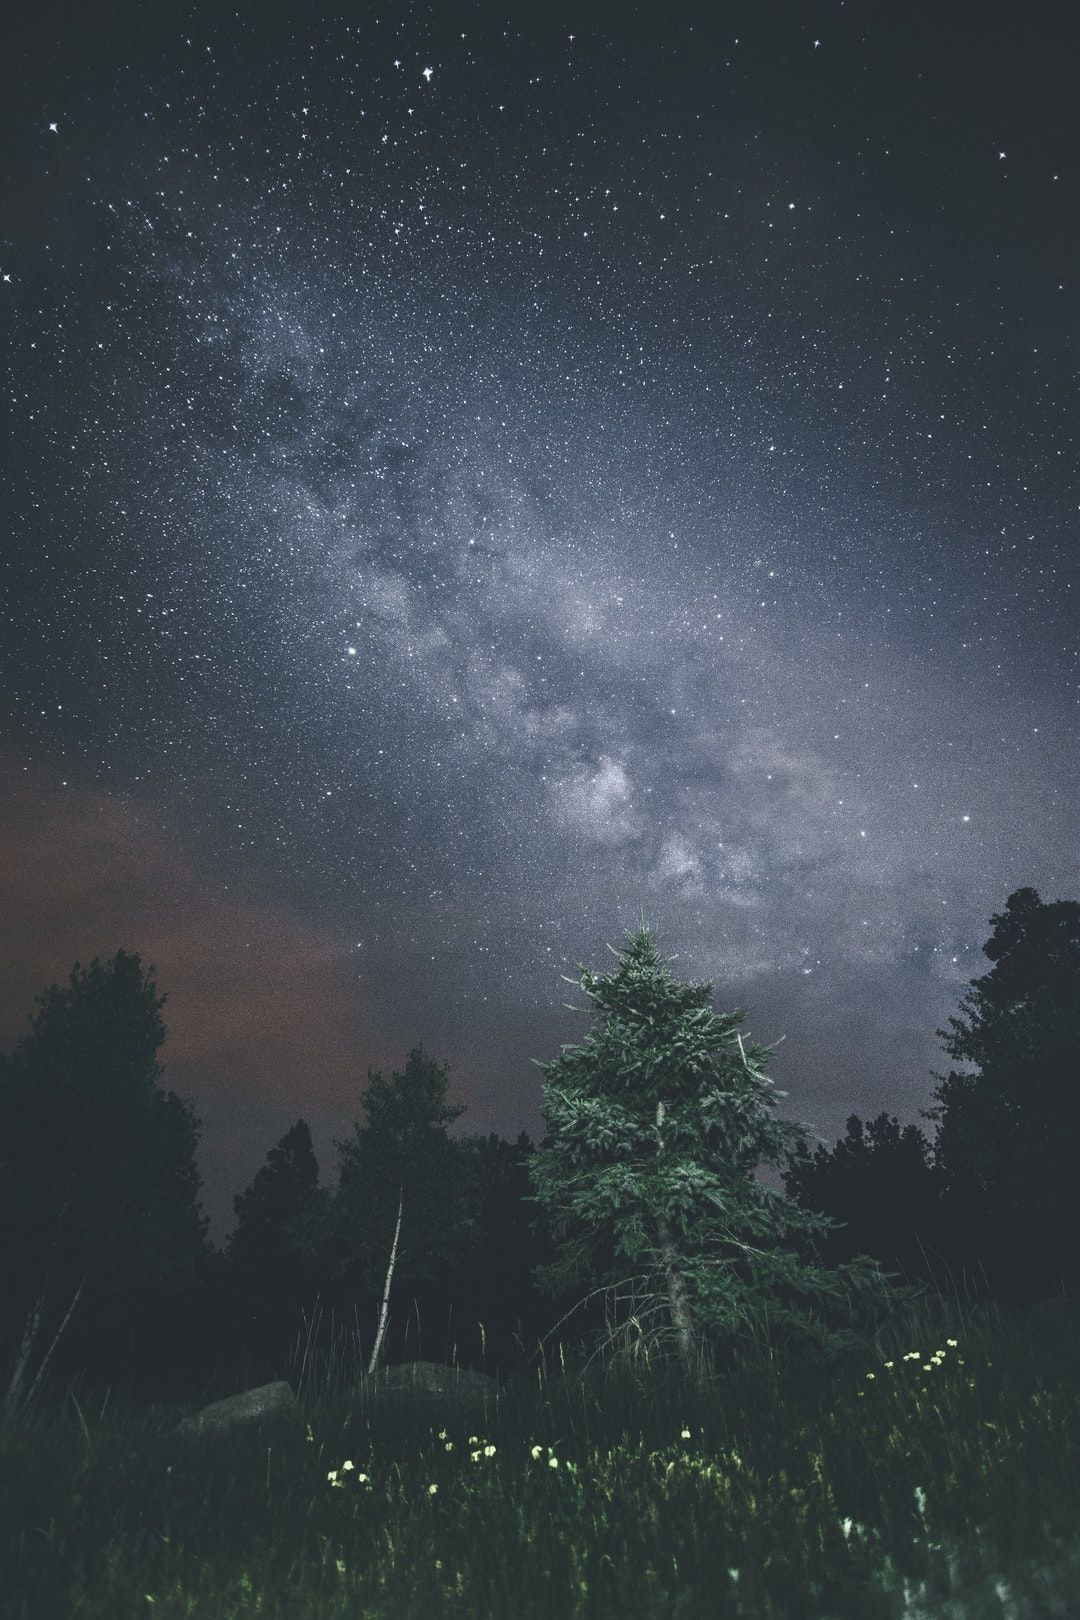 Download This Free Hd Photo Of Night Sky Astrophotography Star And Tree In Keystone United States By Kimo Night Sky Photography Night Sky Stars Night Forest